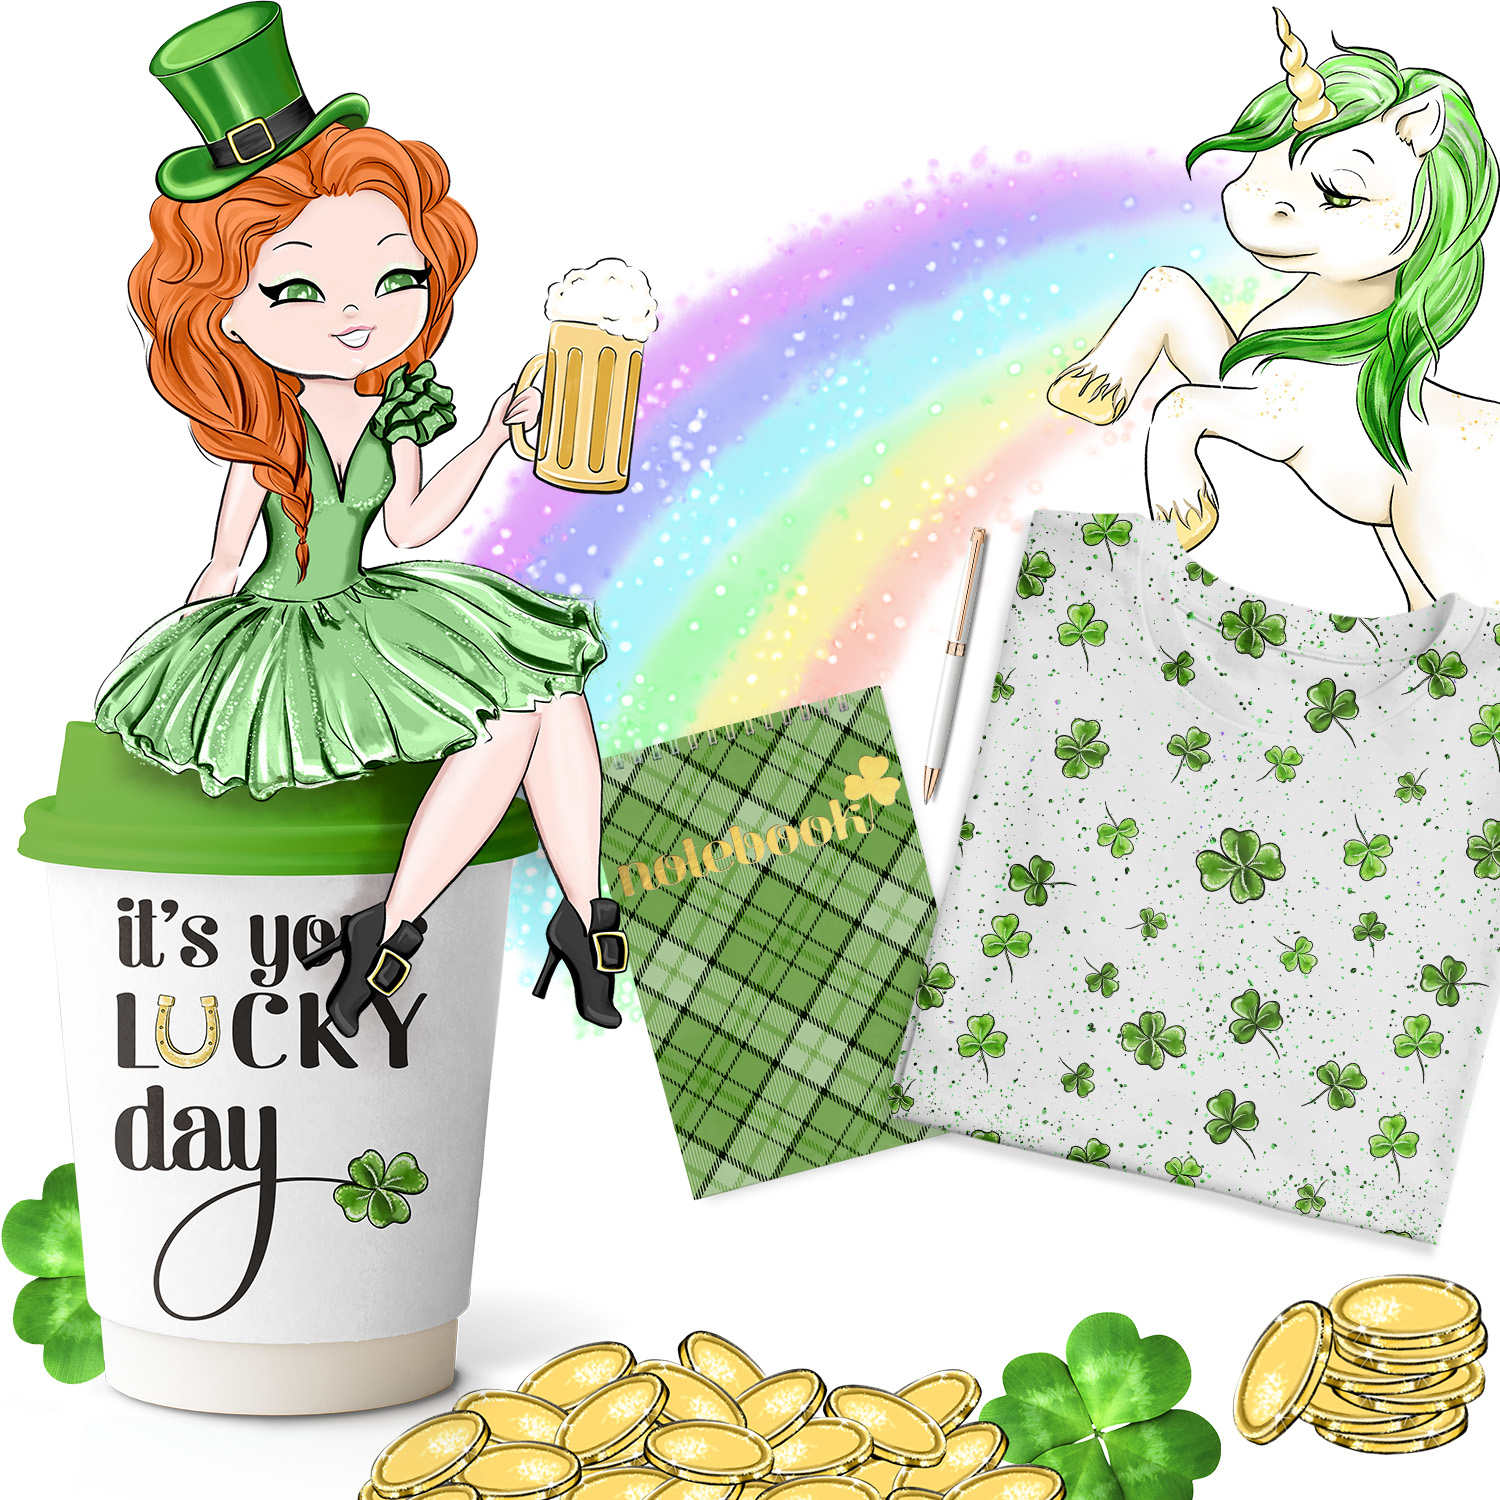 Its Your Lucky Day - Clipart example image 7